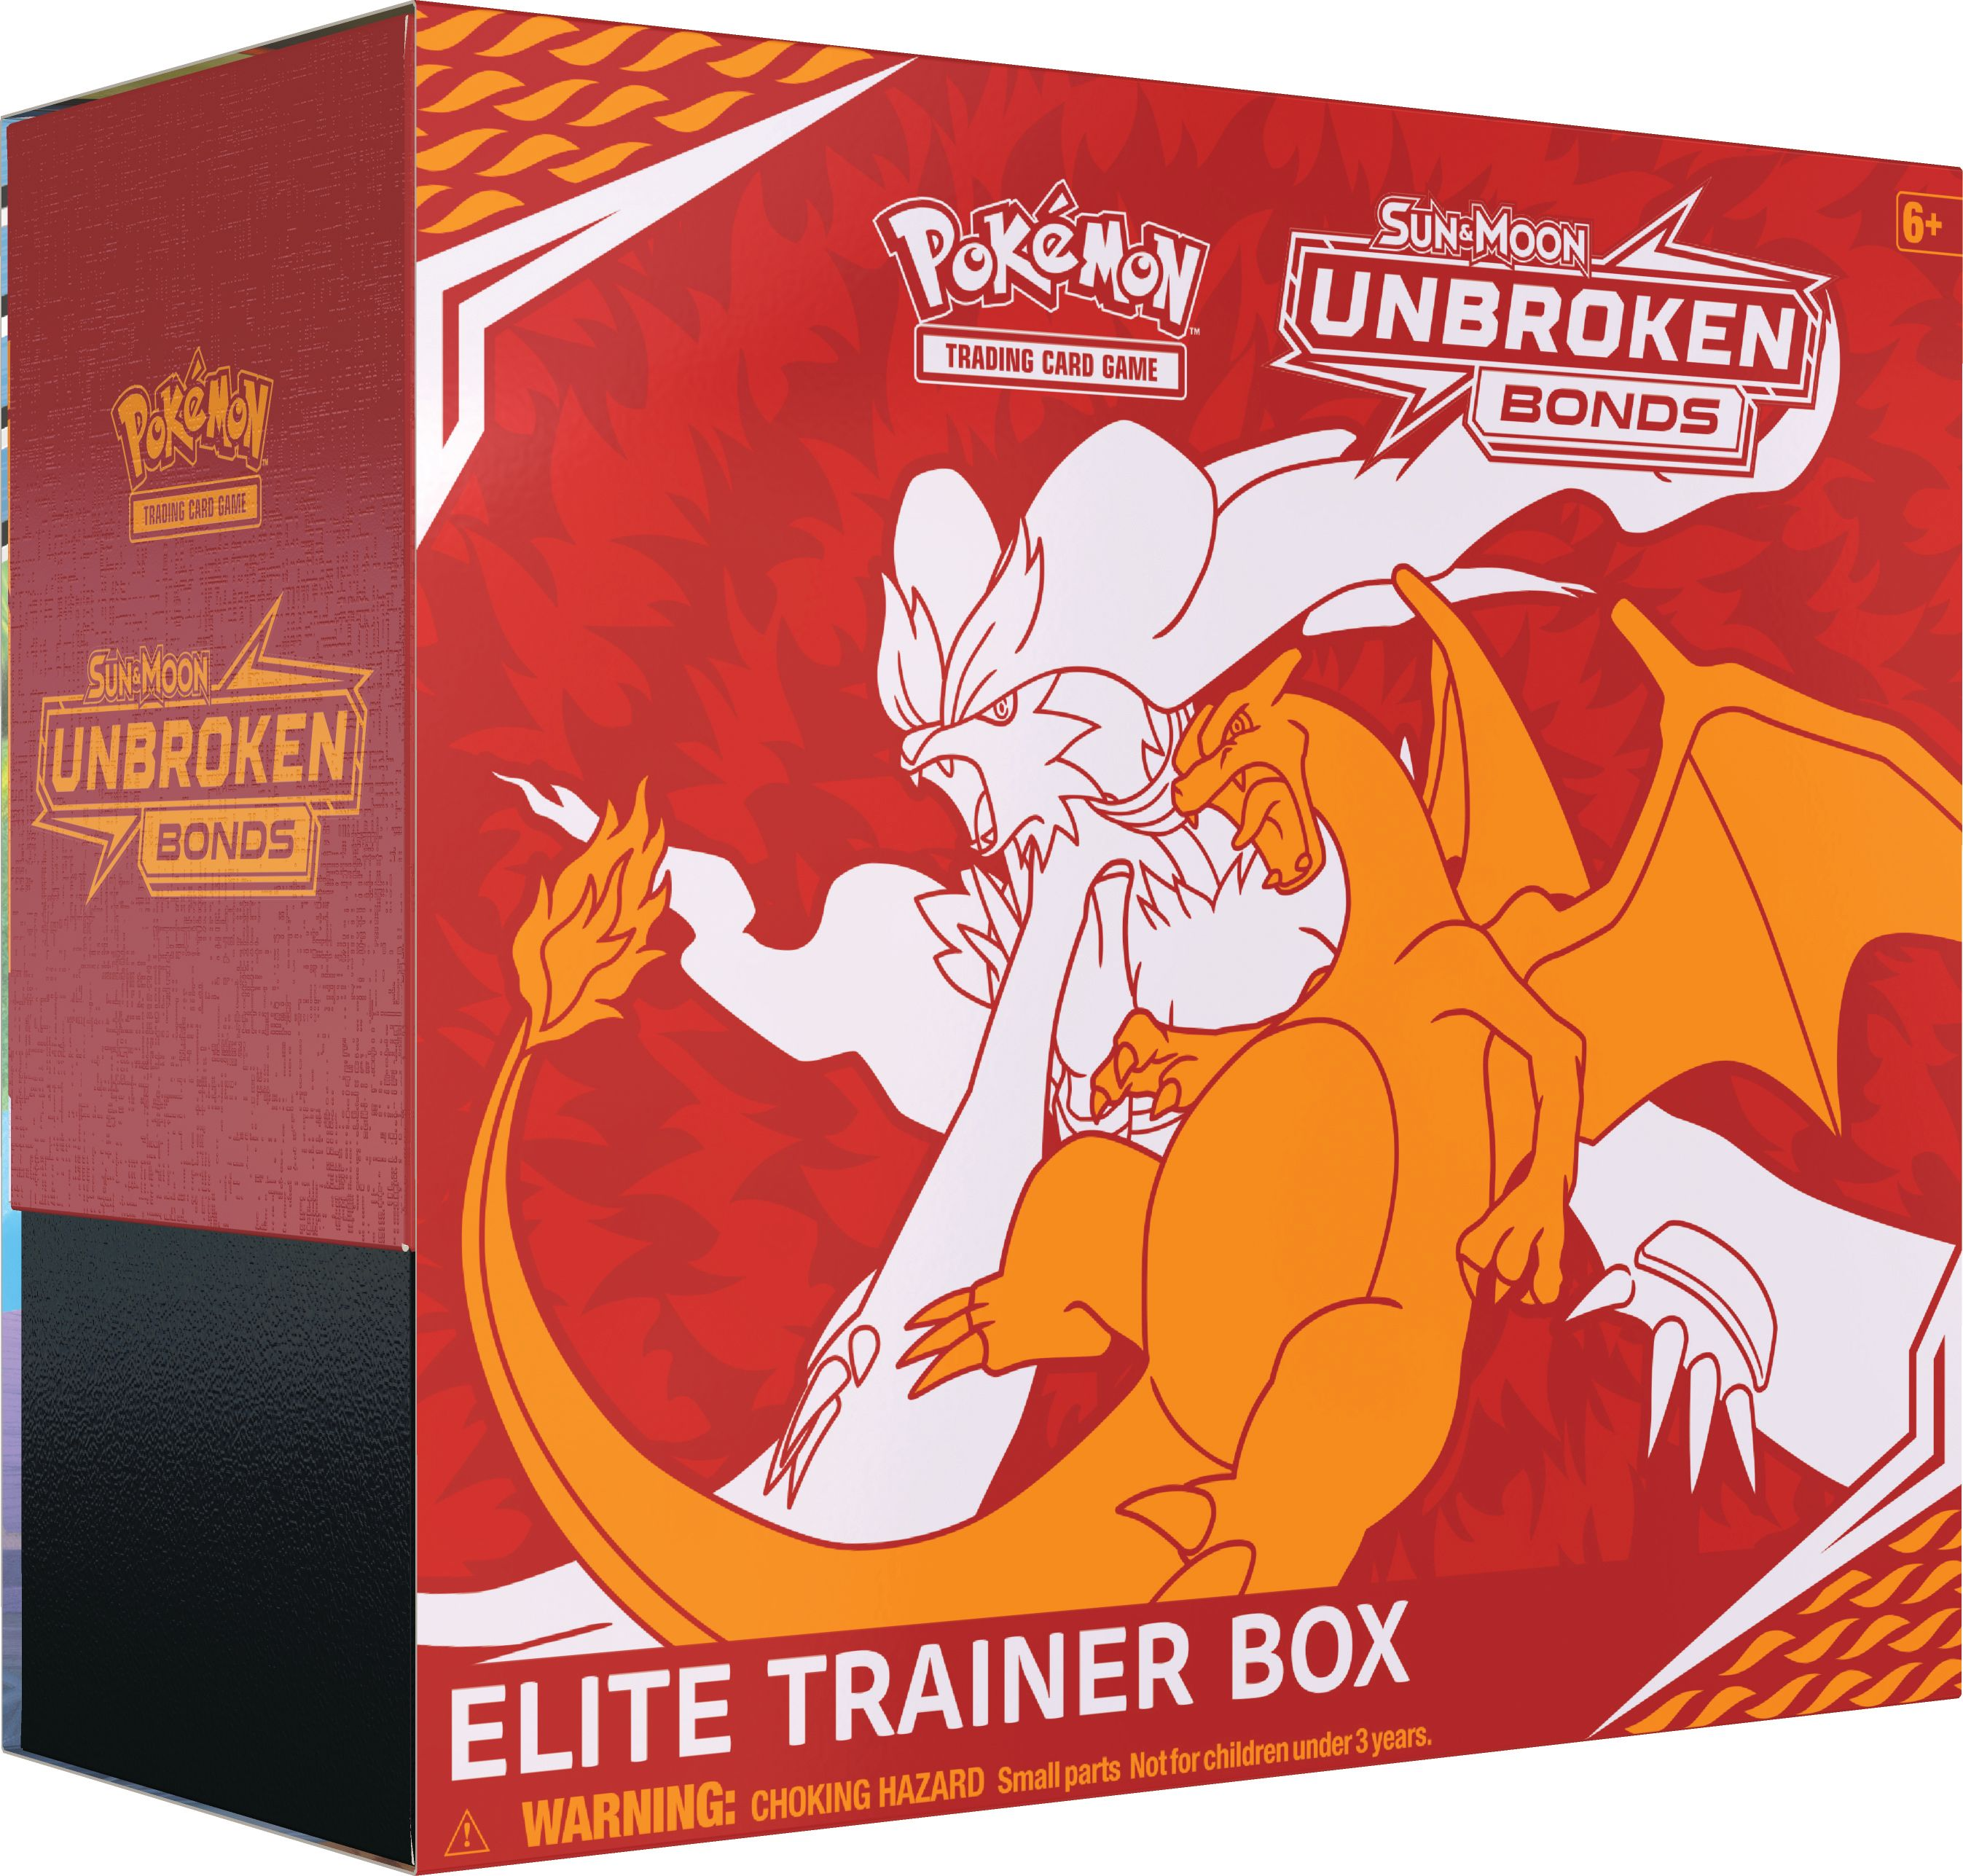 Team Up Elite Trainer Box 8 Booster Packs Pokémon Sun And Moon